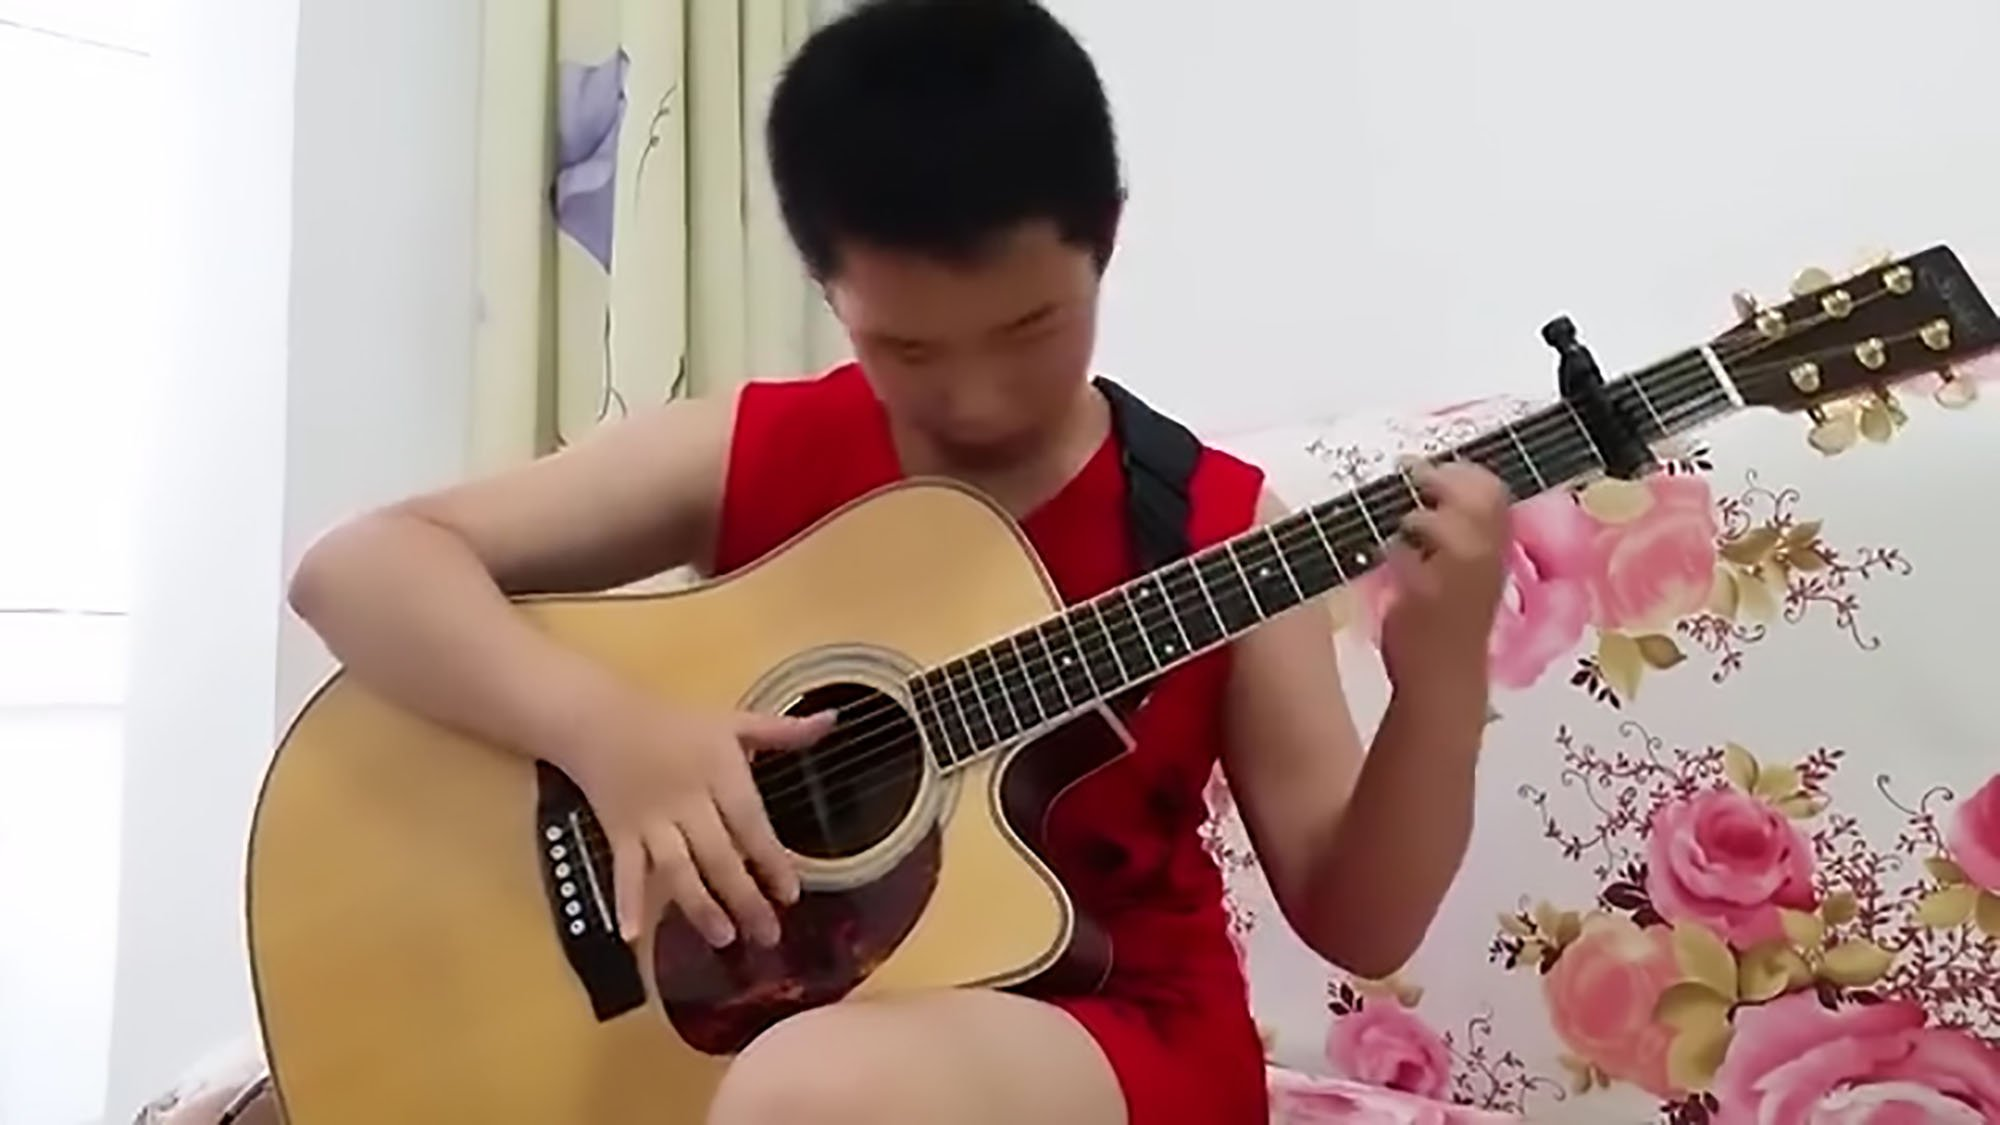 A 13-year-old boy from China has just outdone AC/DC with an incredible performance of Thunderstruck